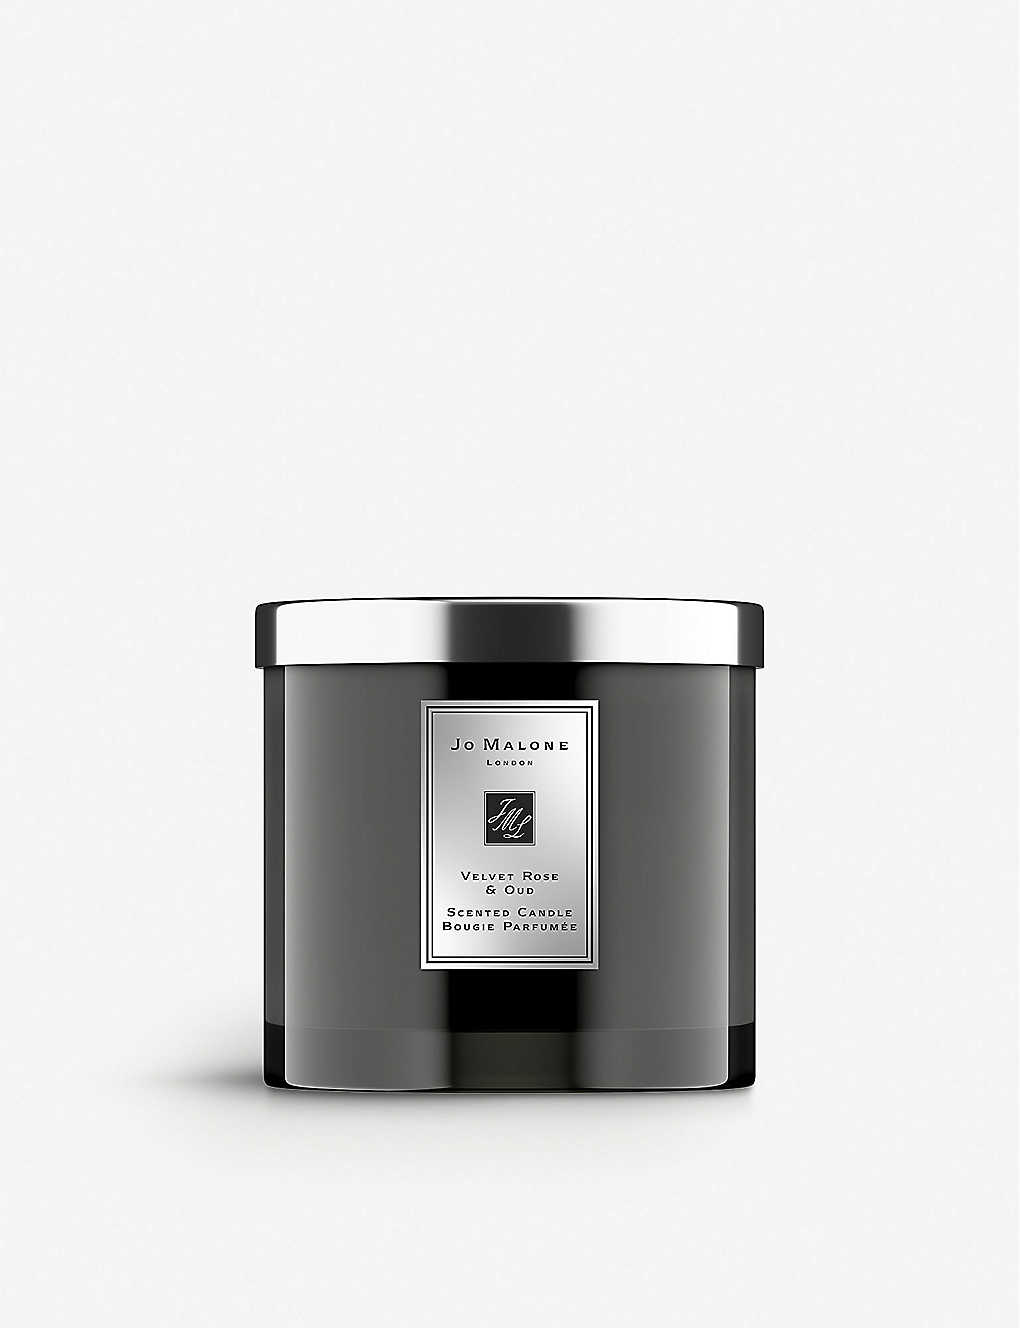 JO MALONE LONDON: Velvet Rose & Oud deluxe candle 600g